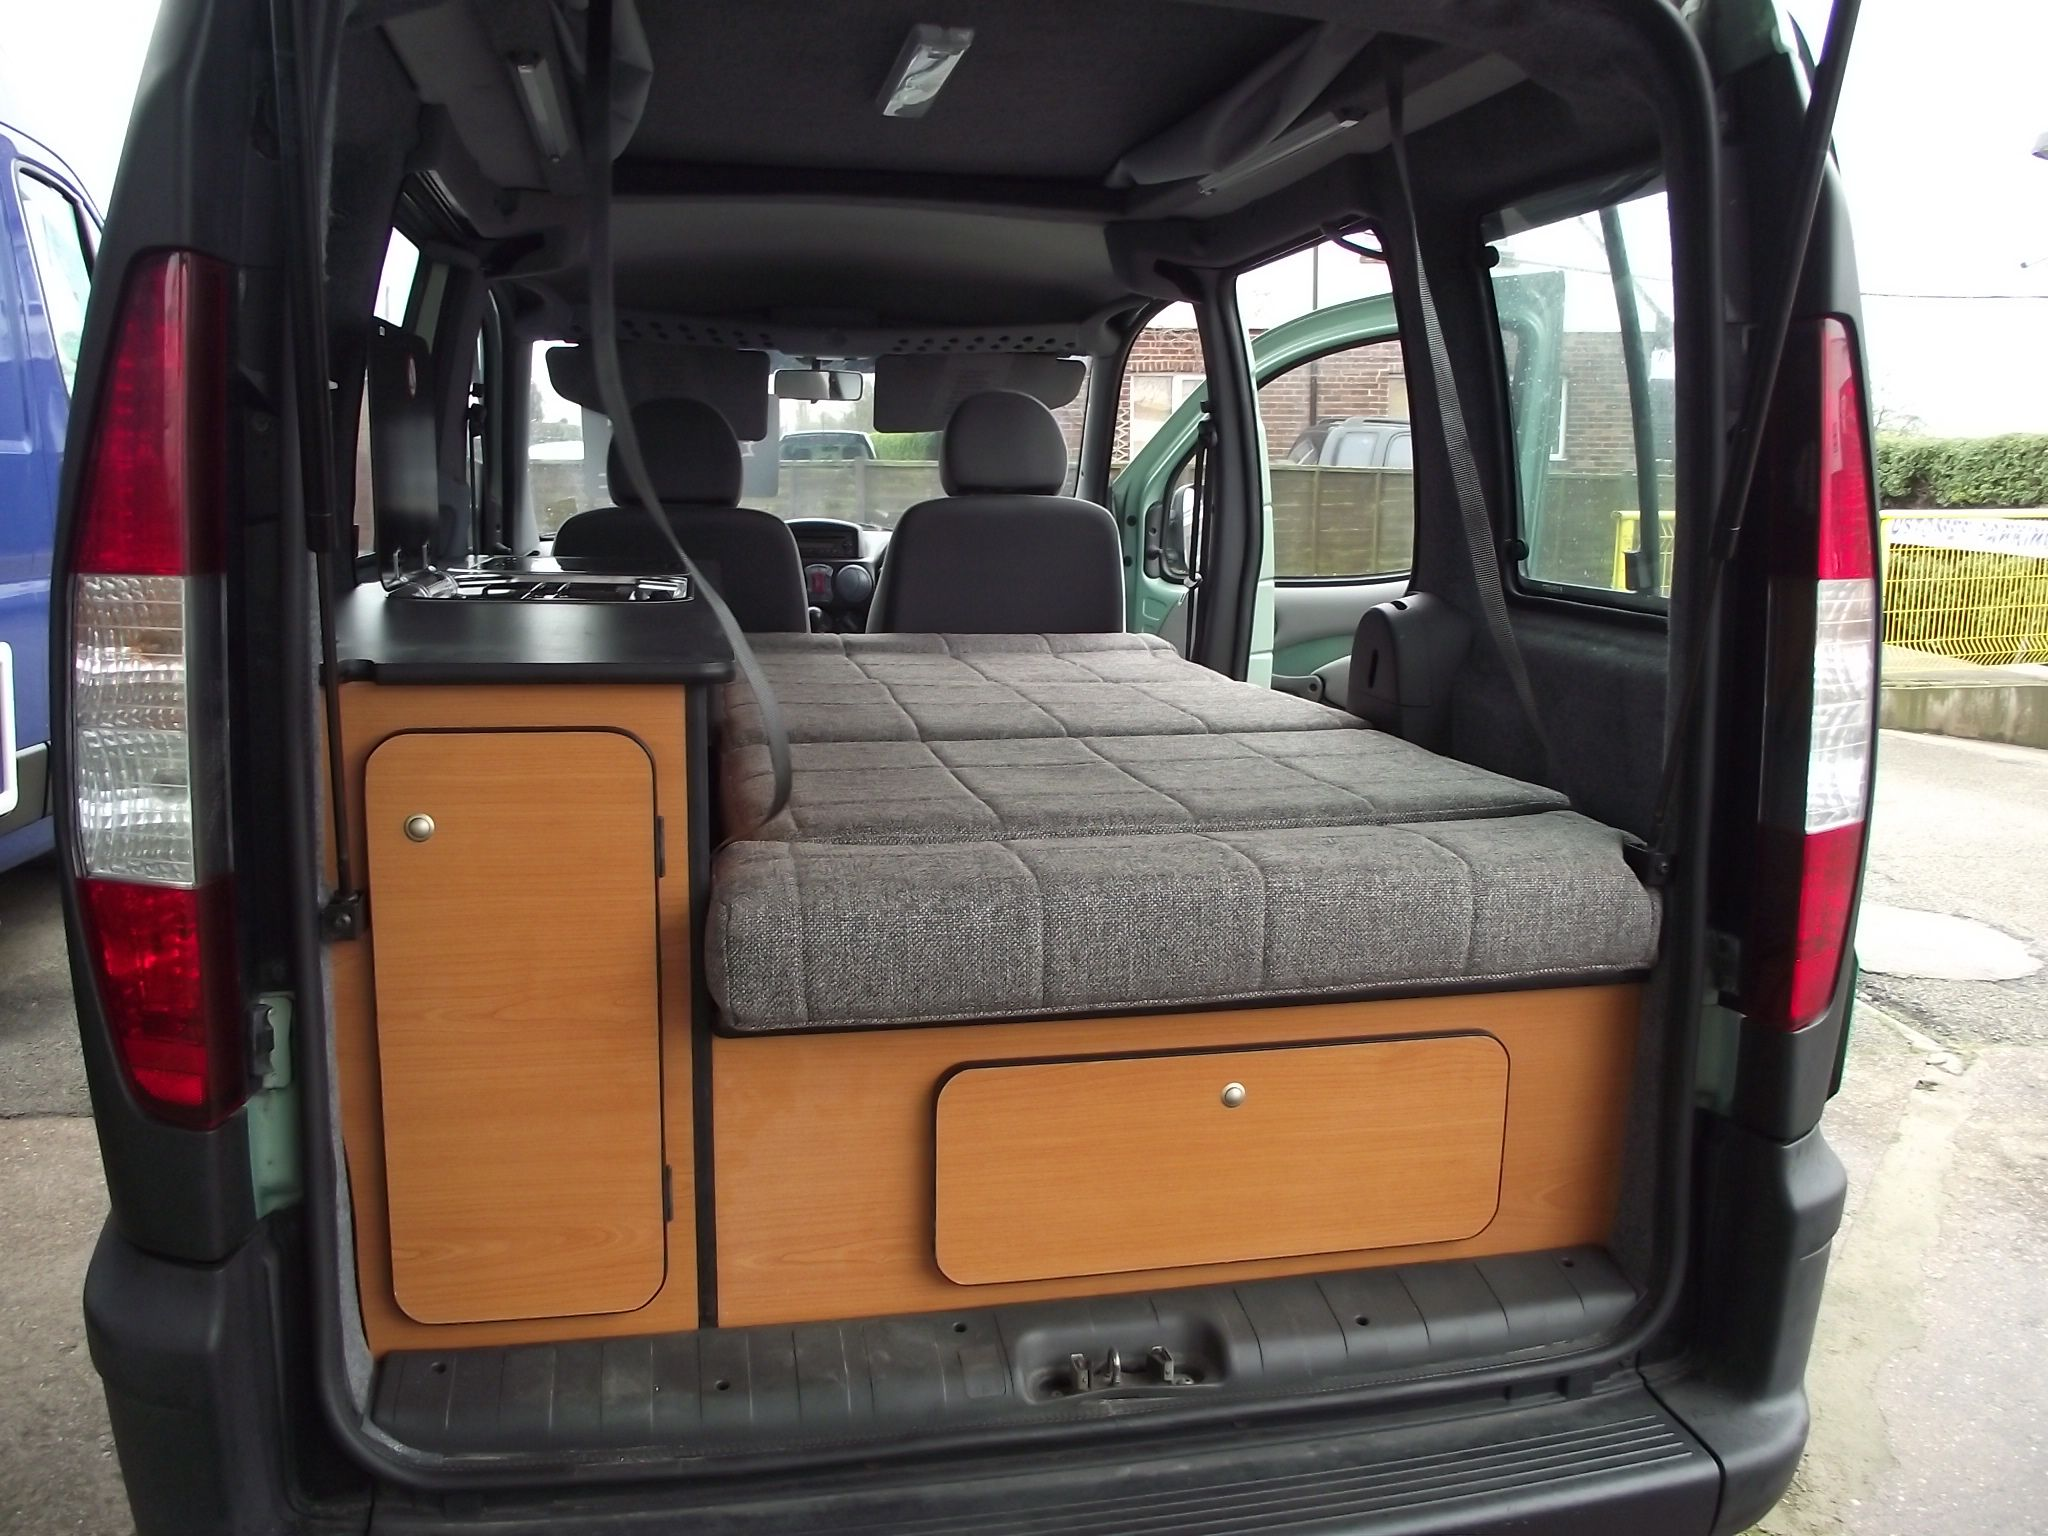 fiat doblo mini tour campervan pinteres. Black Bedroom Furniture Sets. Home Design Ideas